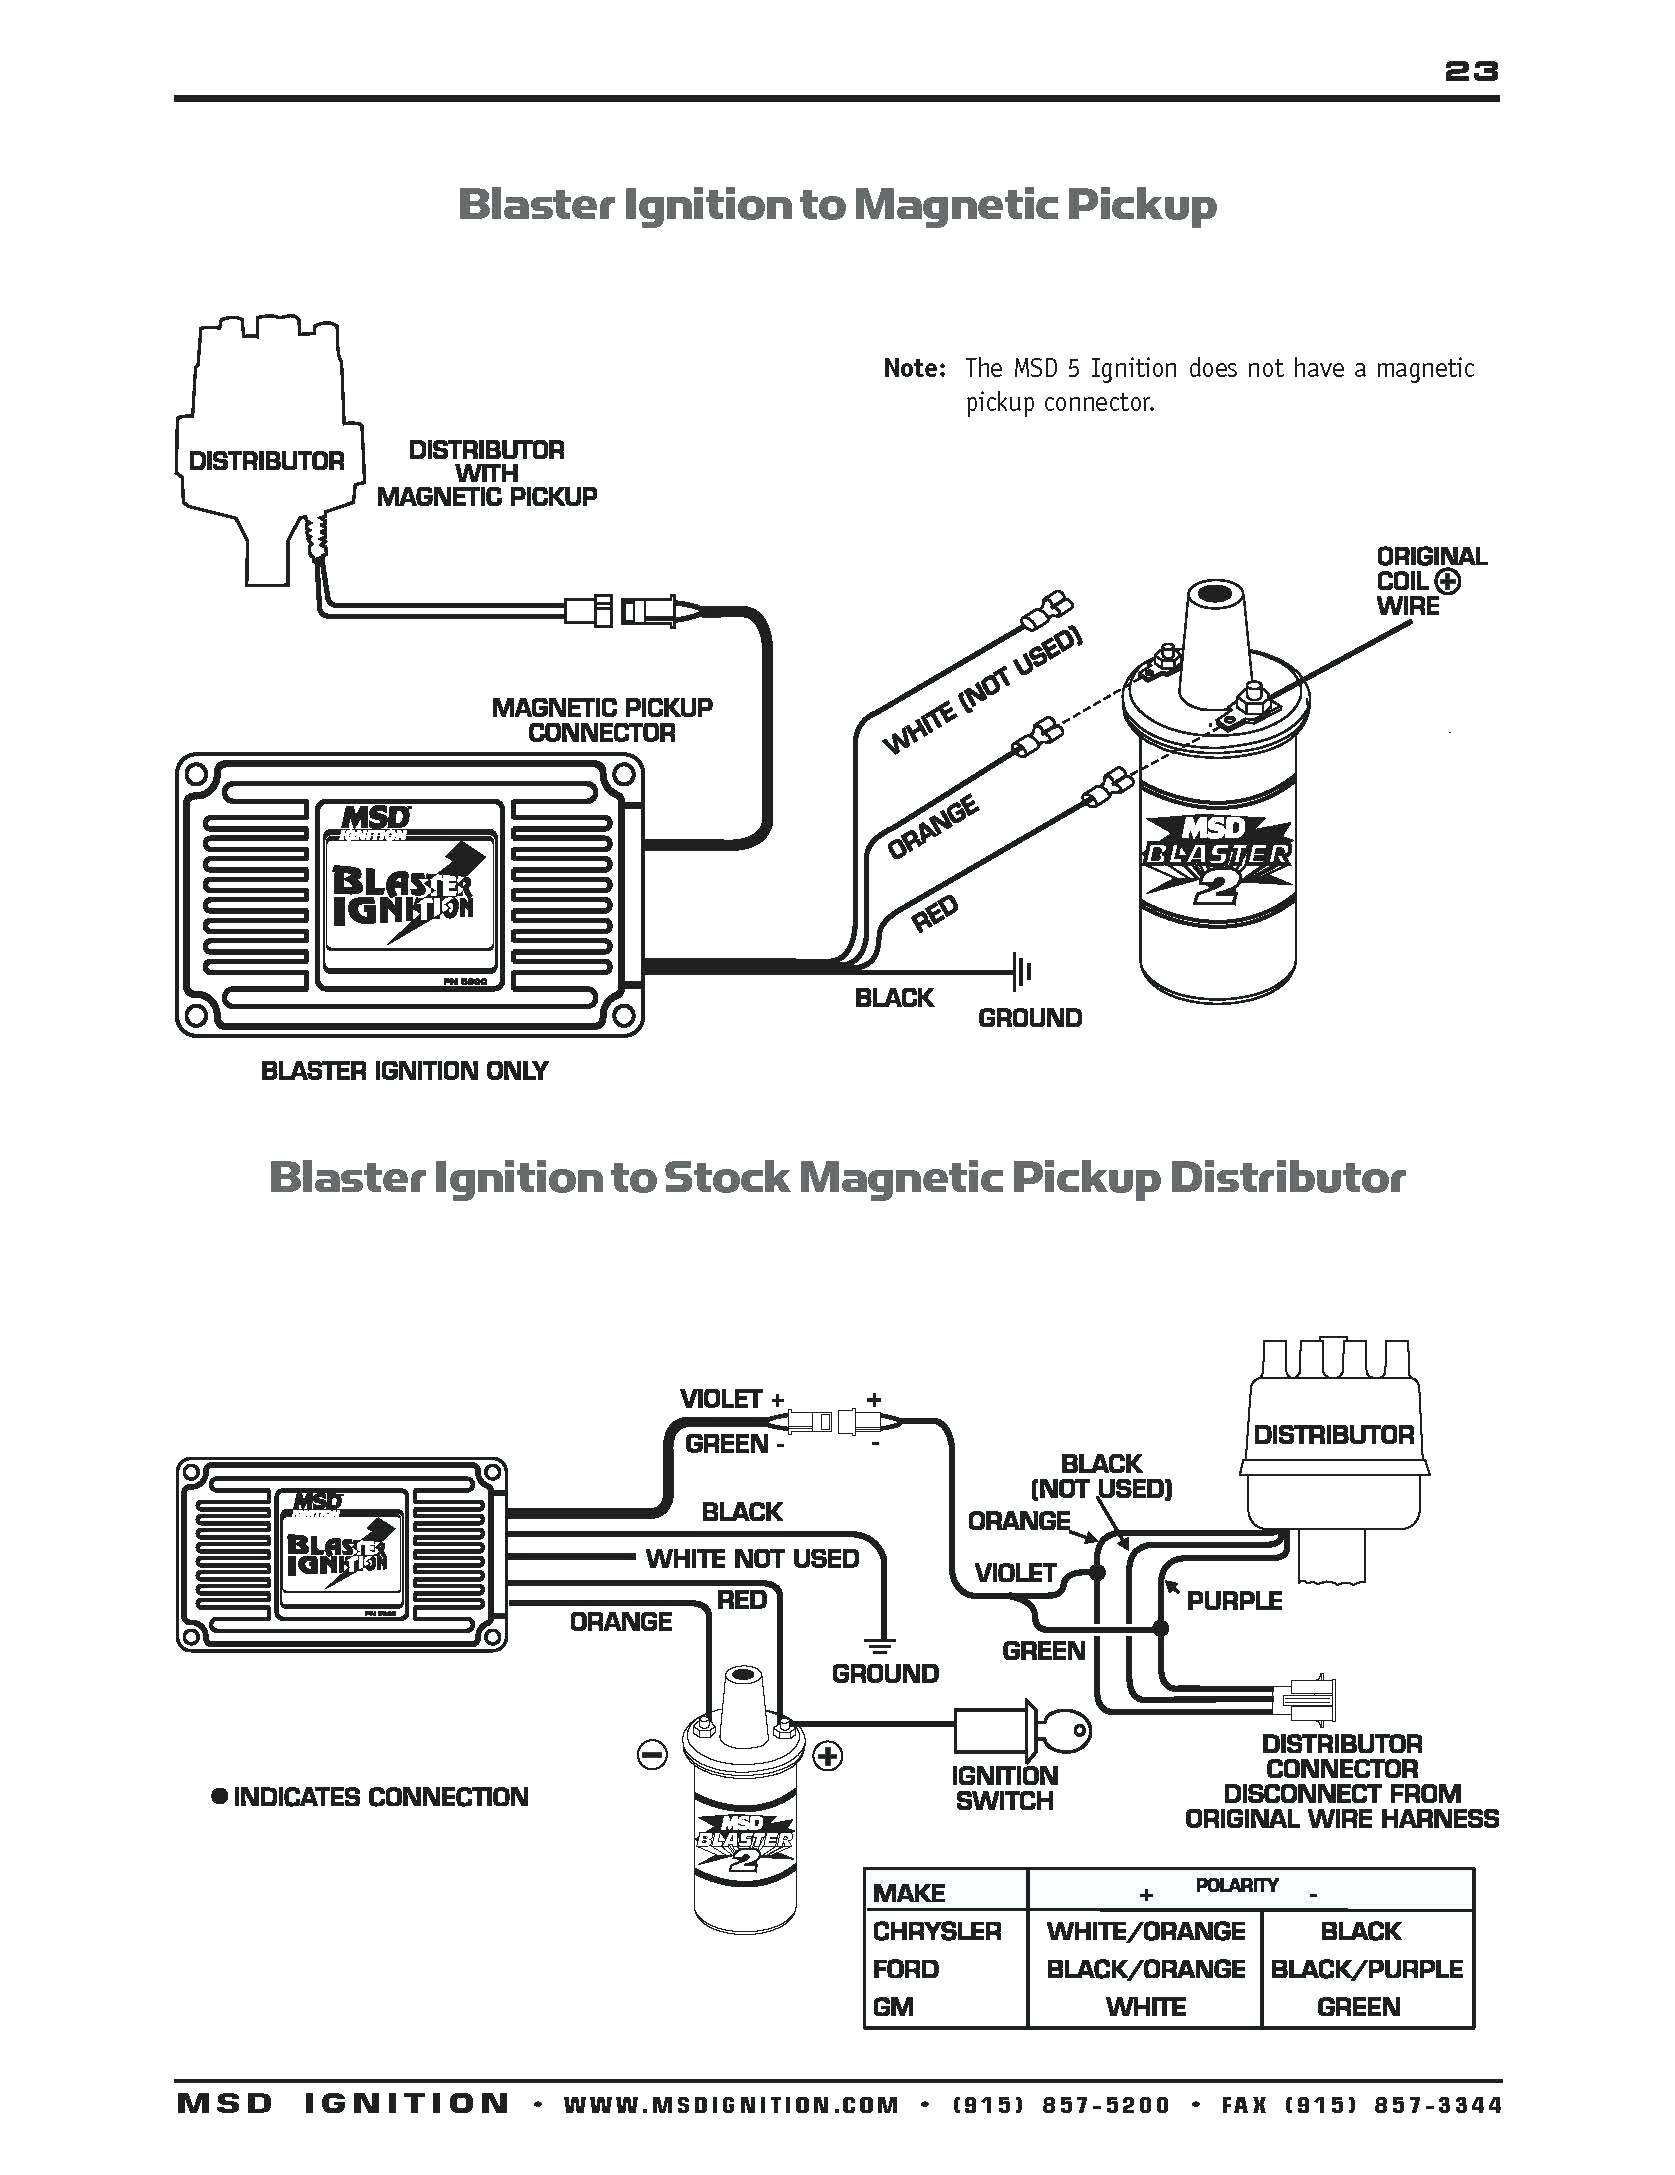 msd ignition wiring diagram mc 0873  msd ignition wiring diagrams brianessercom download diagram msd ignition wiring diagram 6al mc 0873  msd ignition wiring diagrams